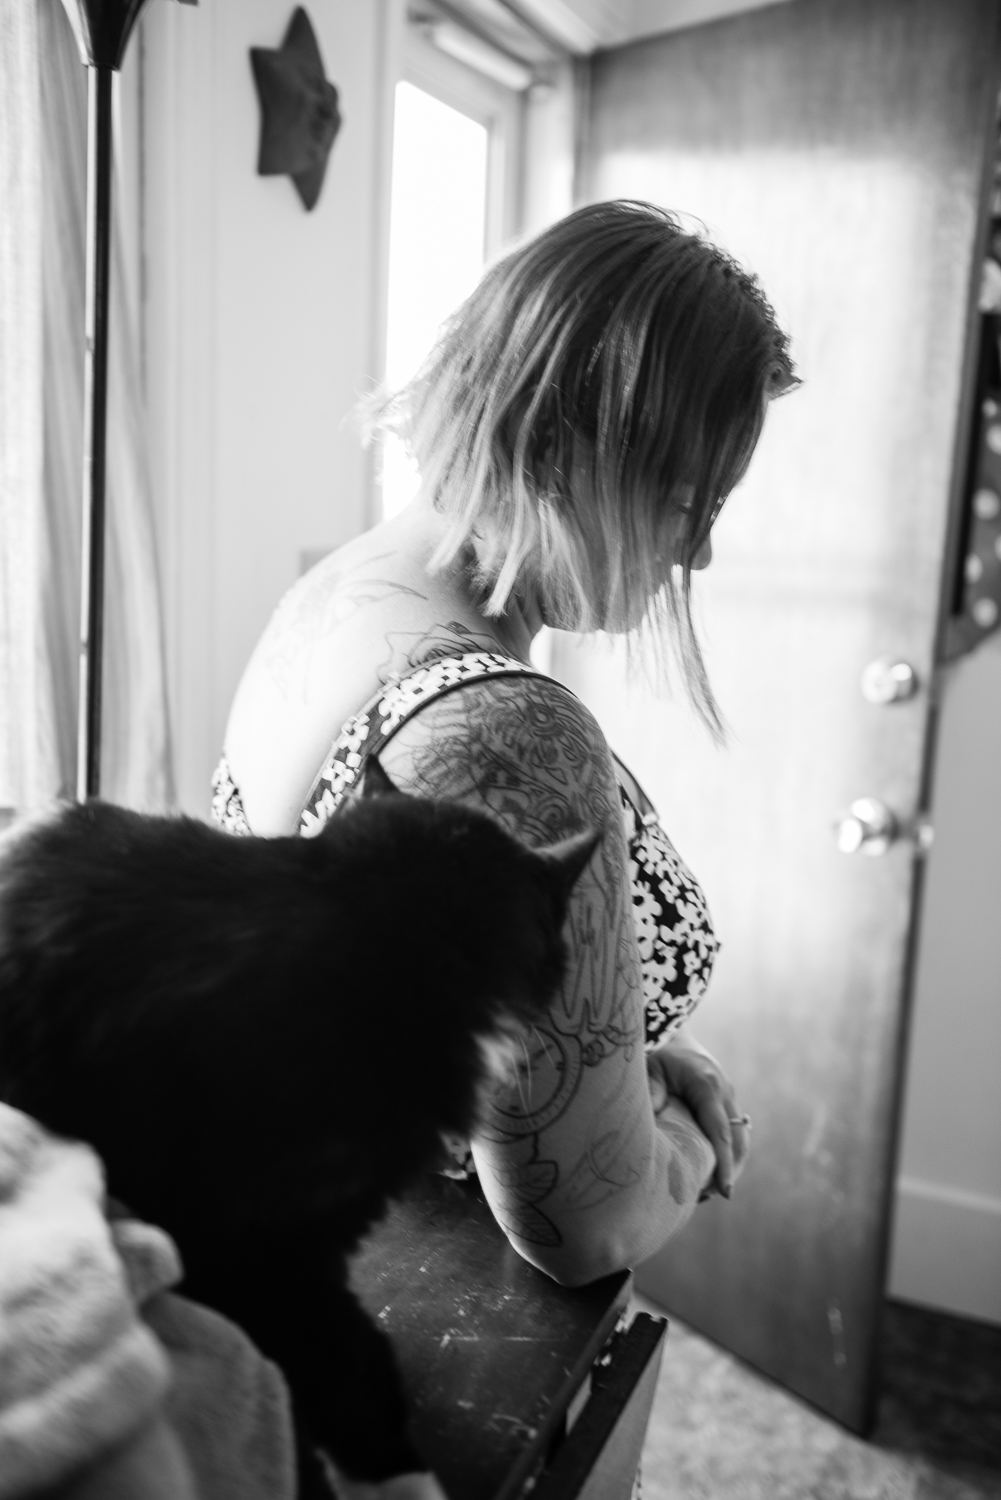 Michelle with her cat who had accompanied her and her kids on their cross-state Amtrak move. Upon arrival, they lived in a shelter.